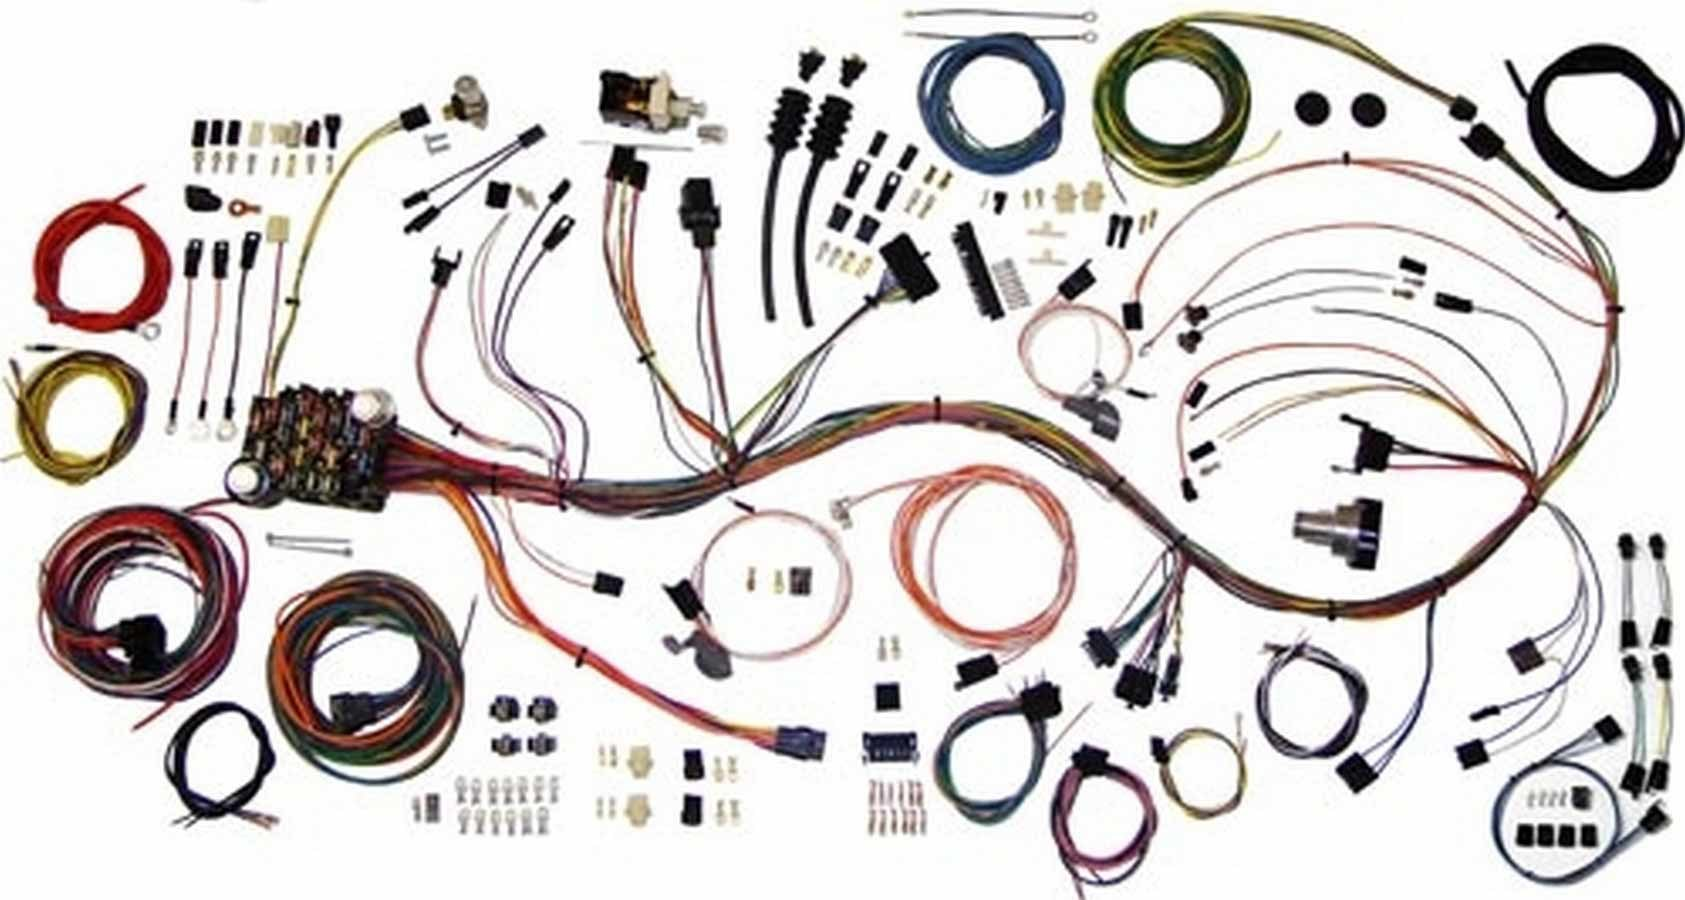 American Autowire 510333 Car Wiring Harness, Classic Update, Complete, Chevy Truck 1967-68, Kit